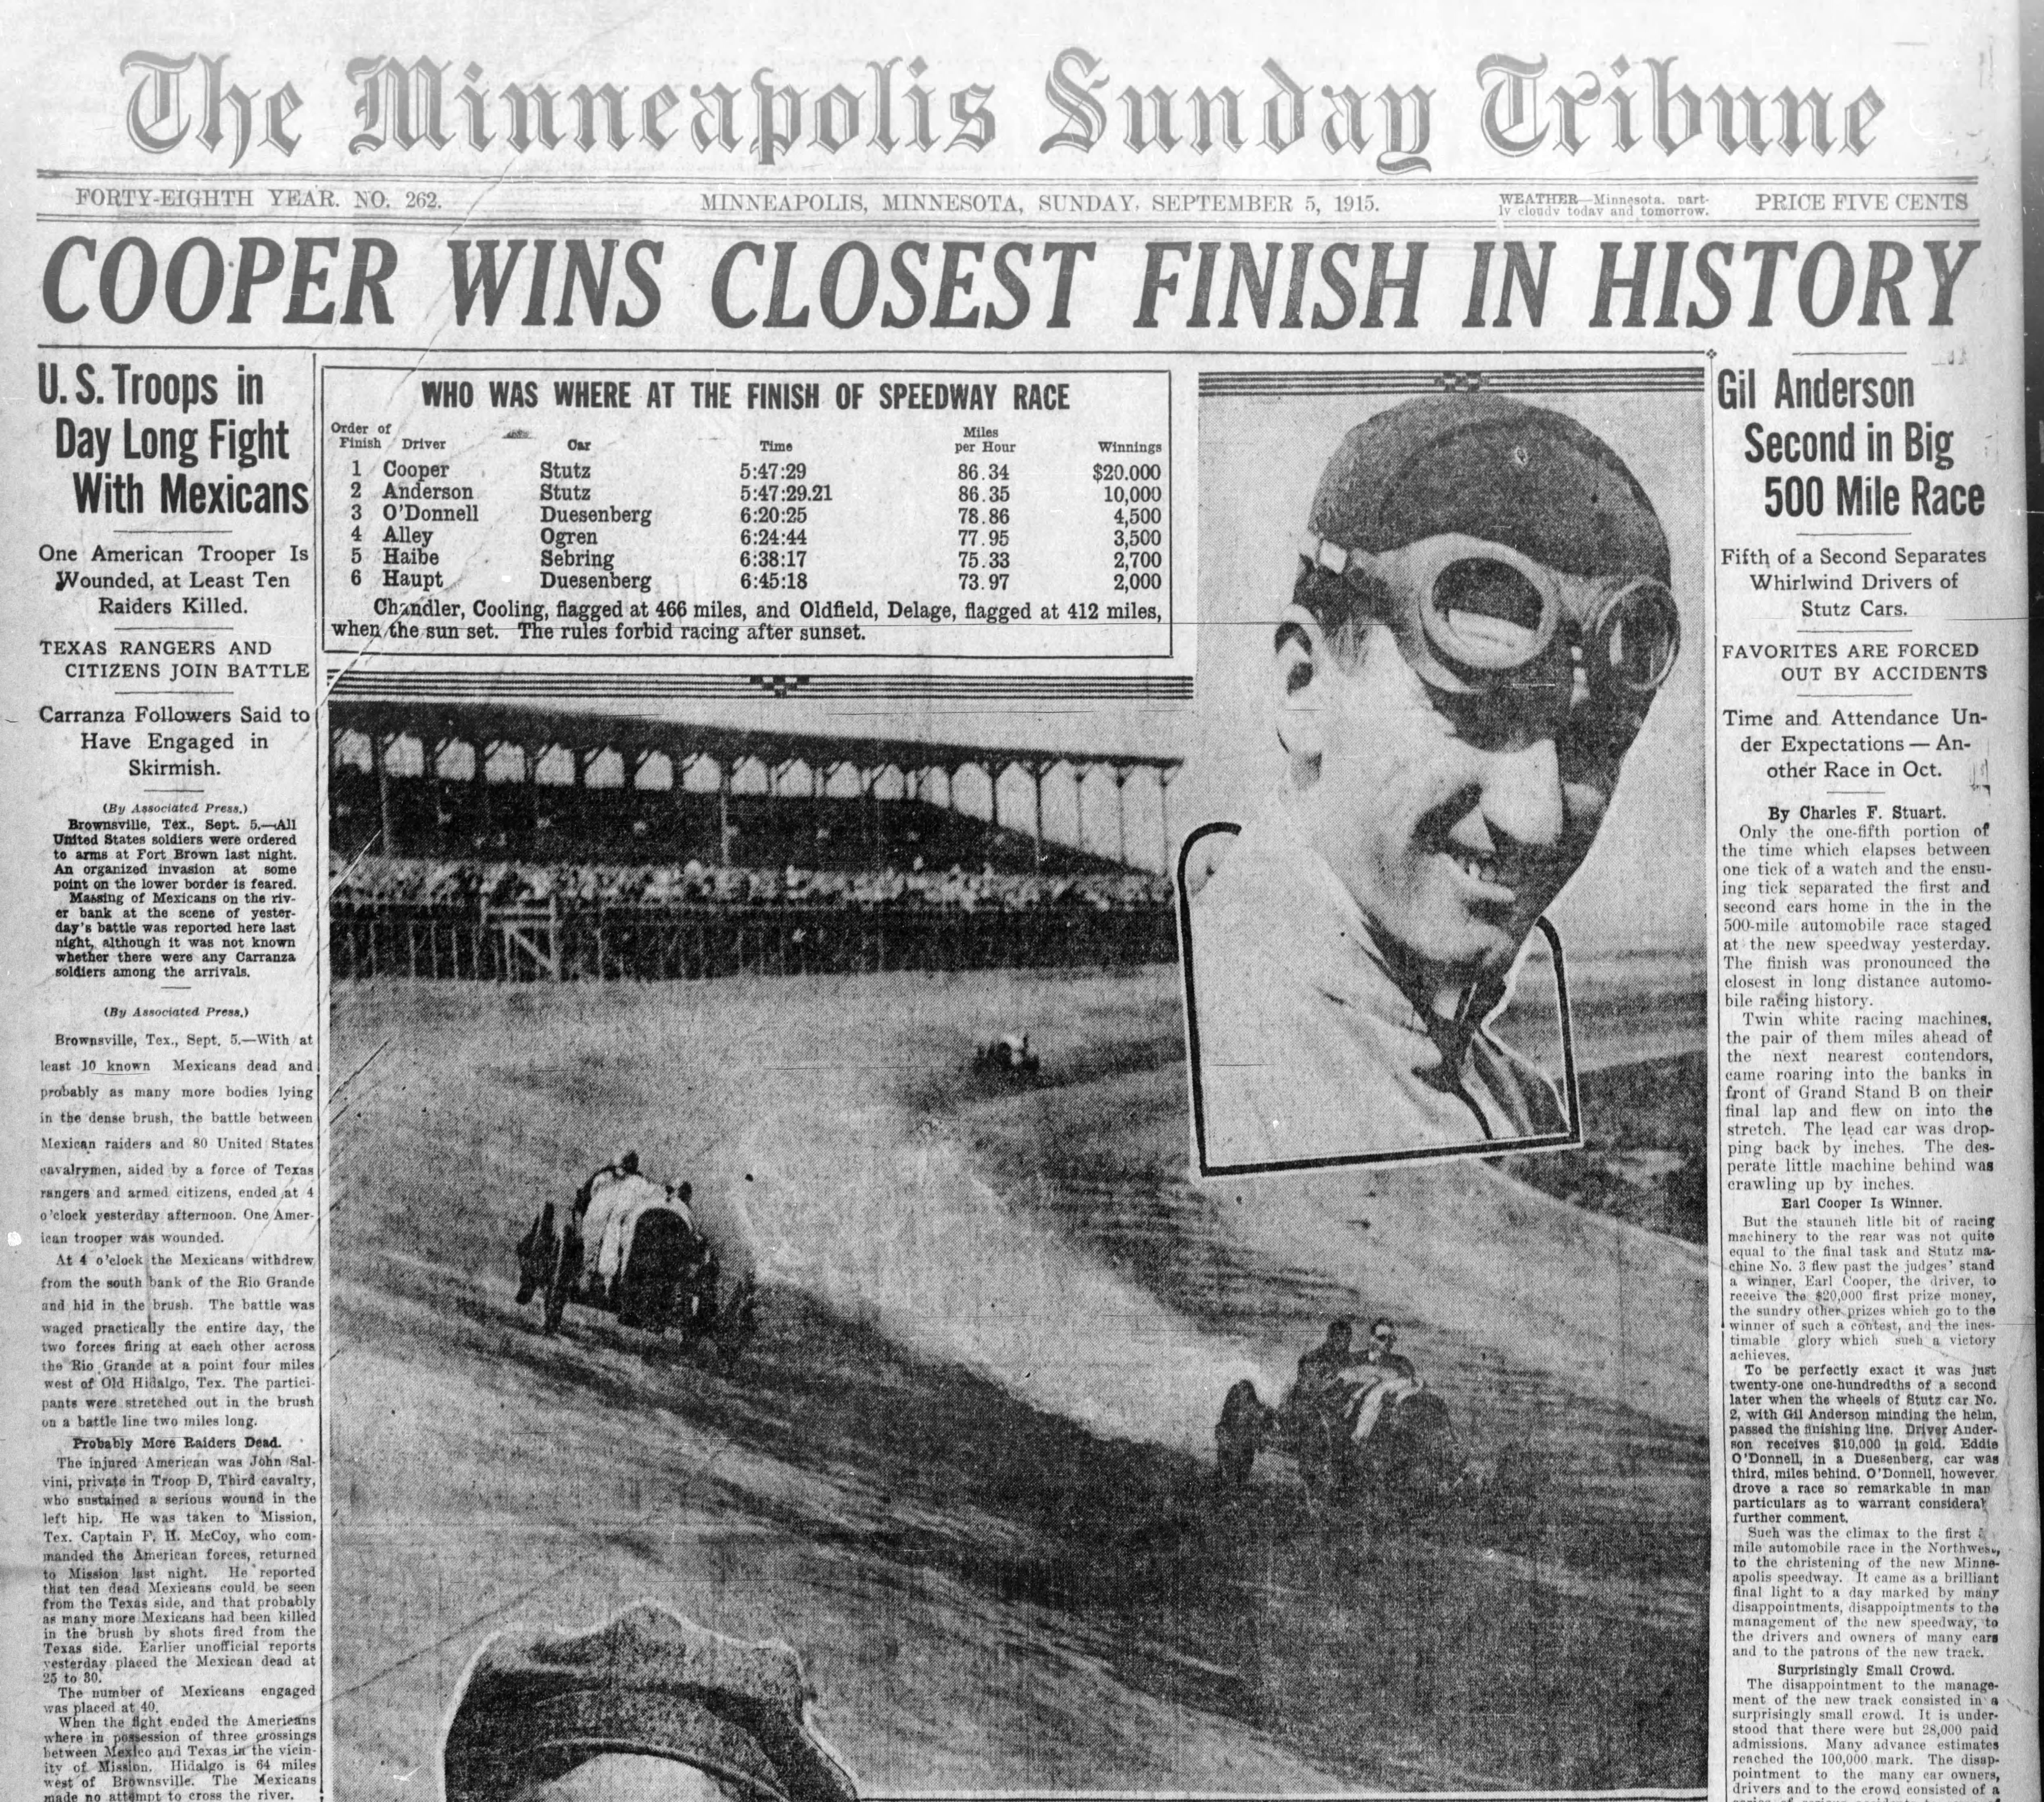 The Minneapolis Tribune front page on September 5, 1915, the day after the big opening race at Twin City Motor Speedway.